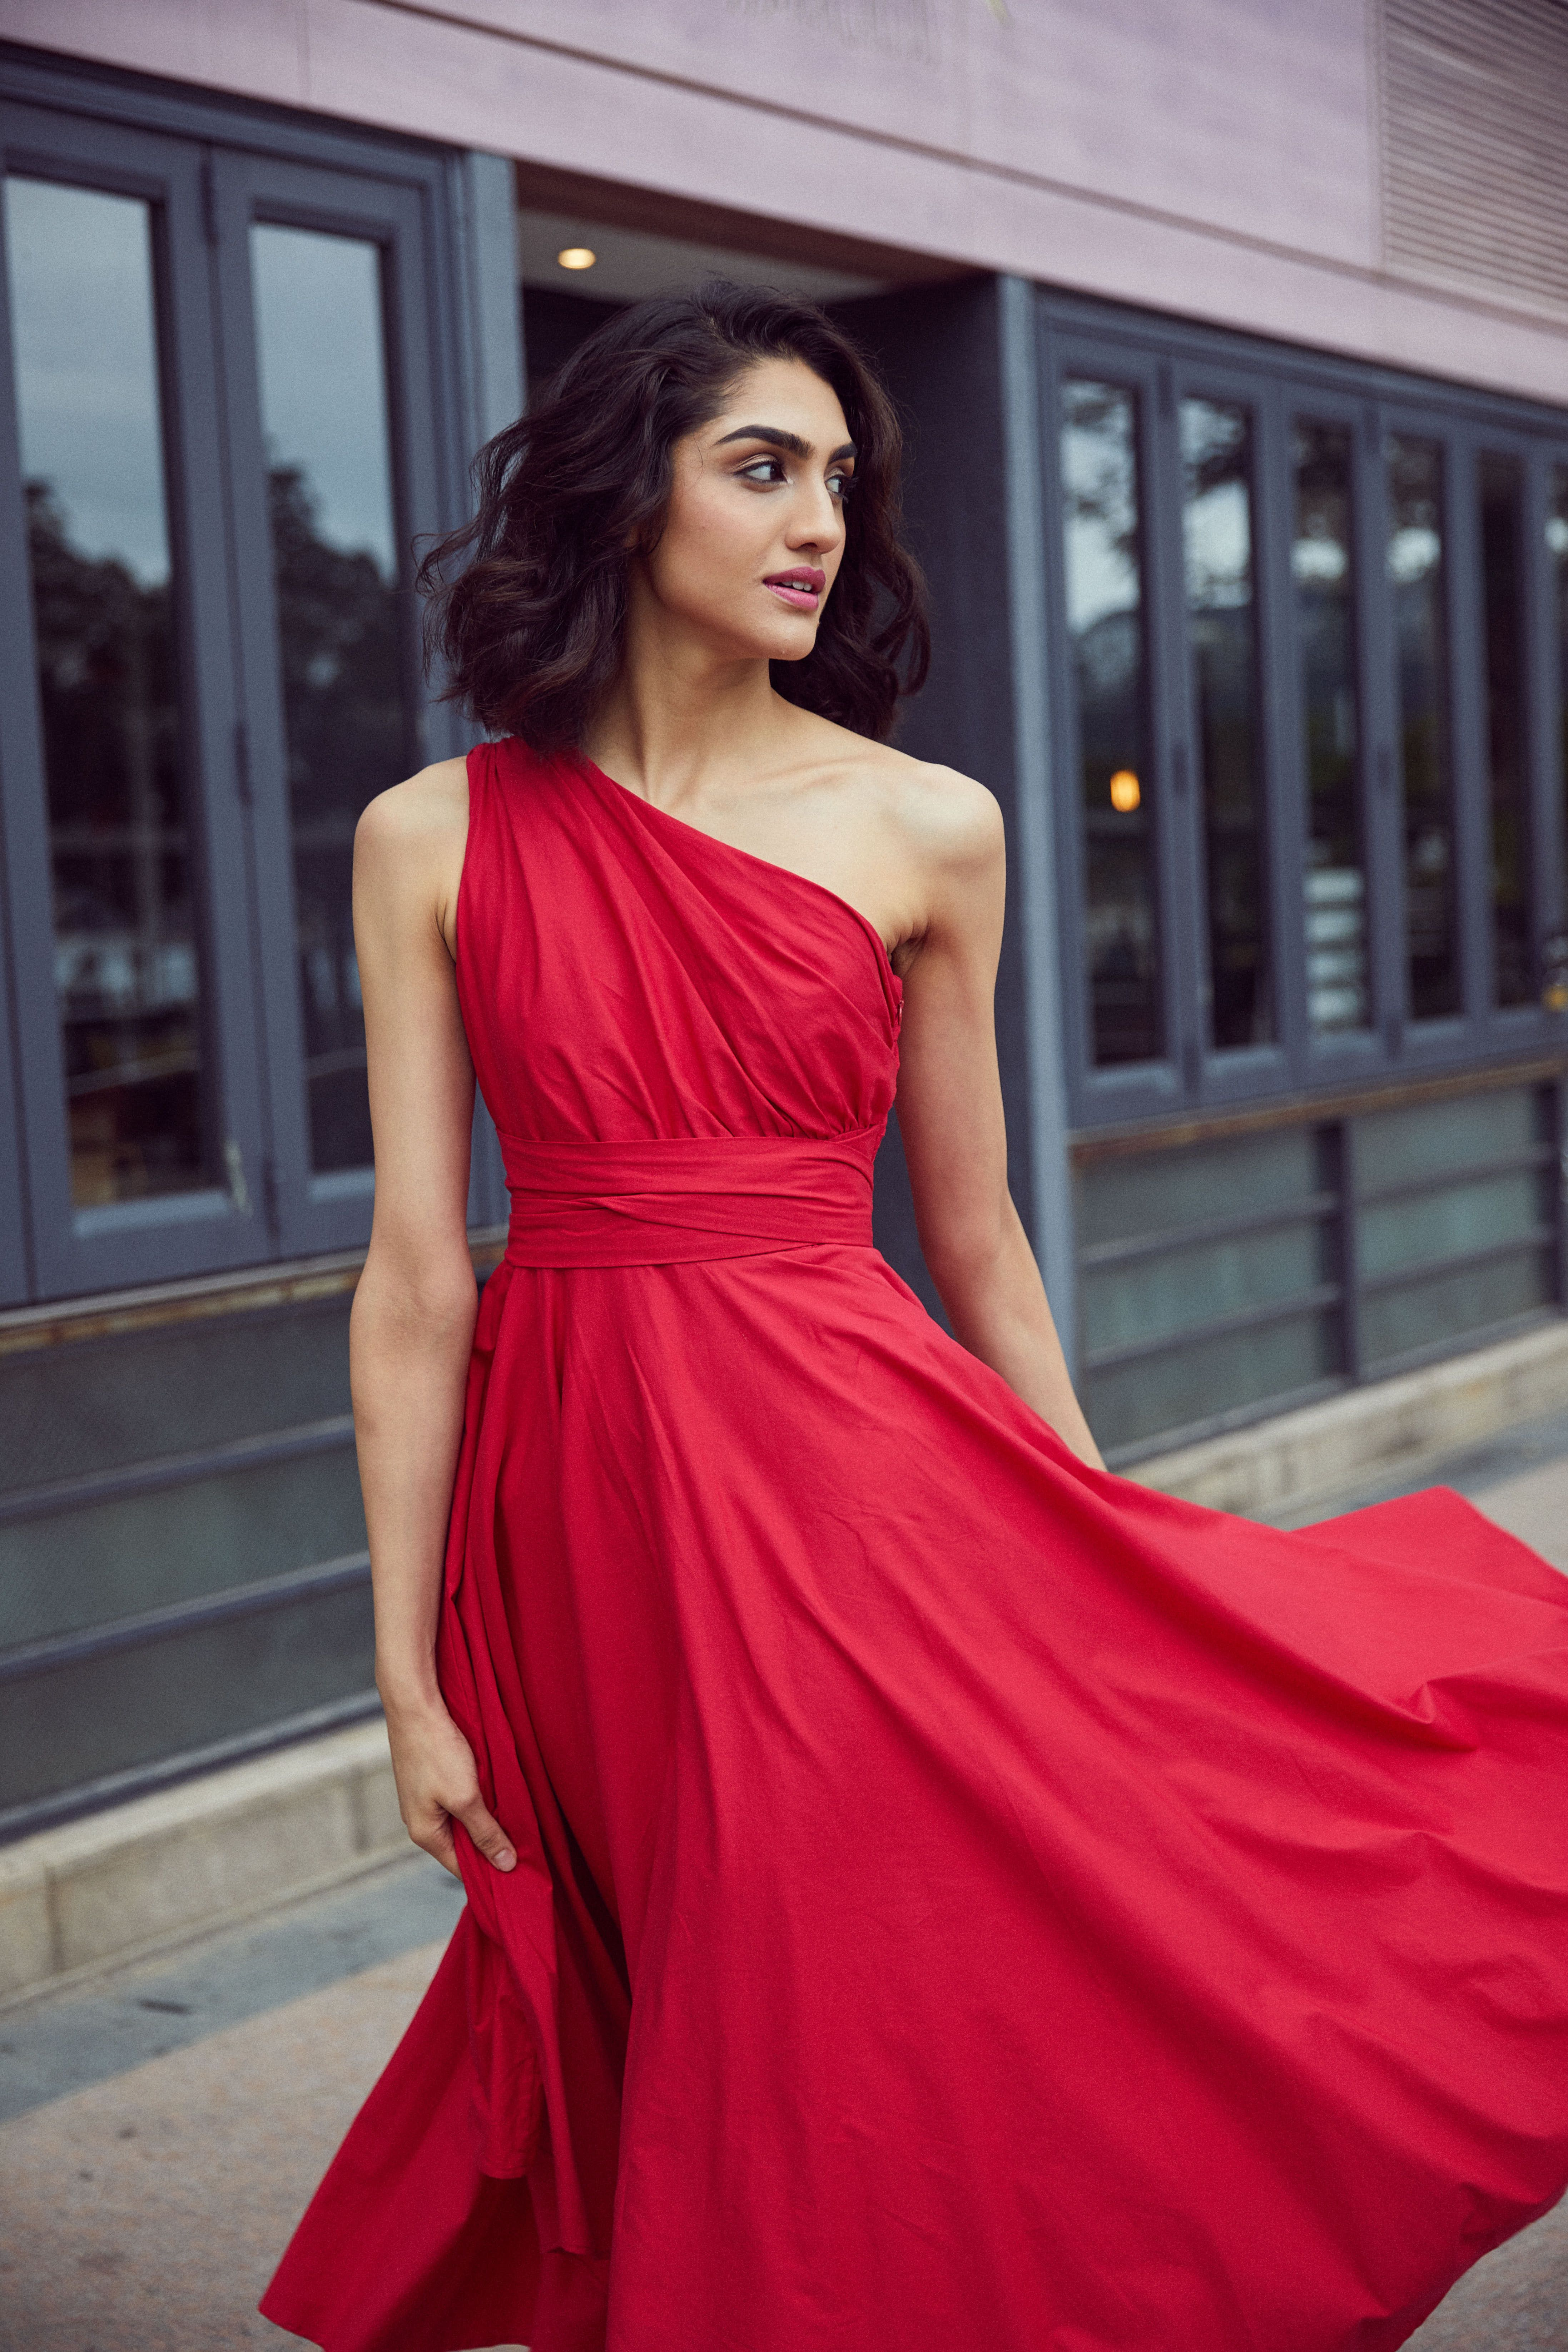 Bright Red One Shoulder Cotton Midi Dress Red Midi Dress Cotton Midi Dress Red Wedding Dresses,Wedding Ceremony Blazer Wedding Dresses For Men